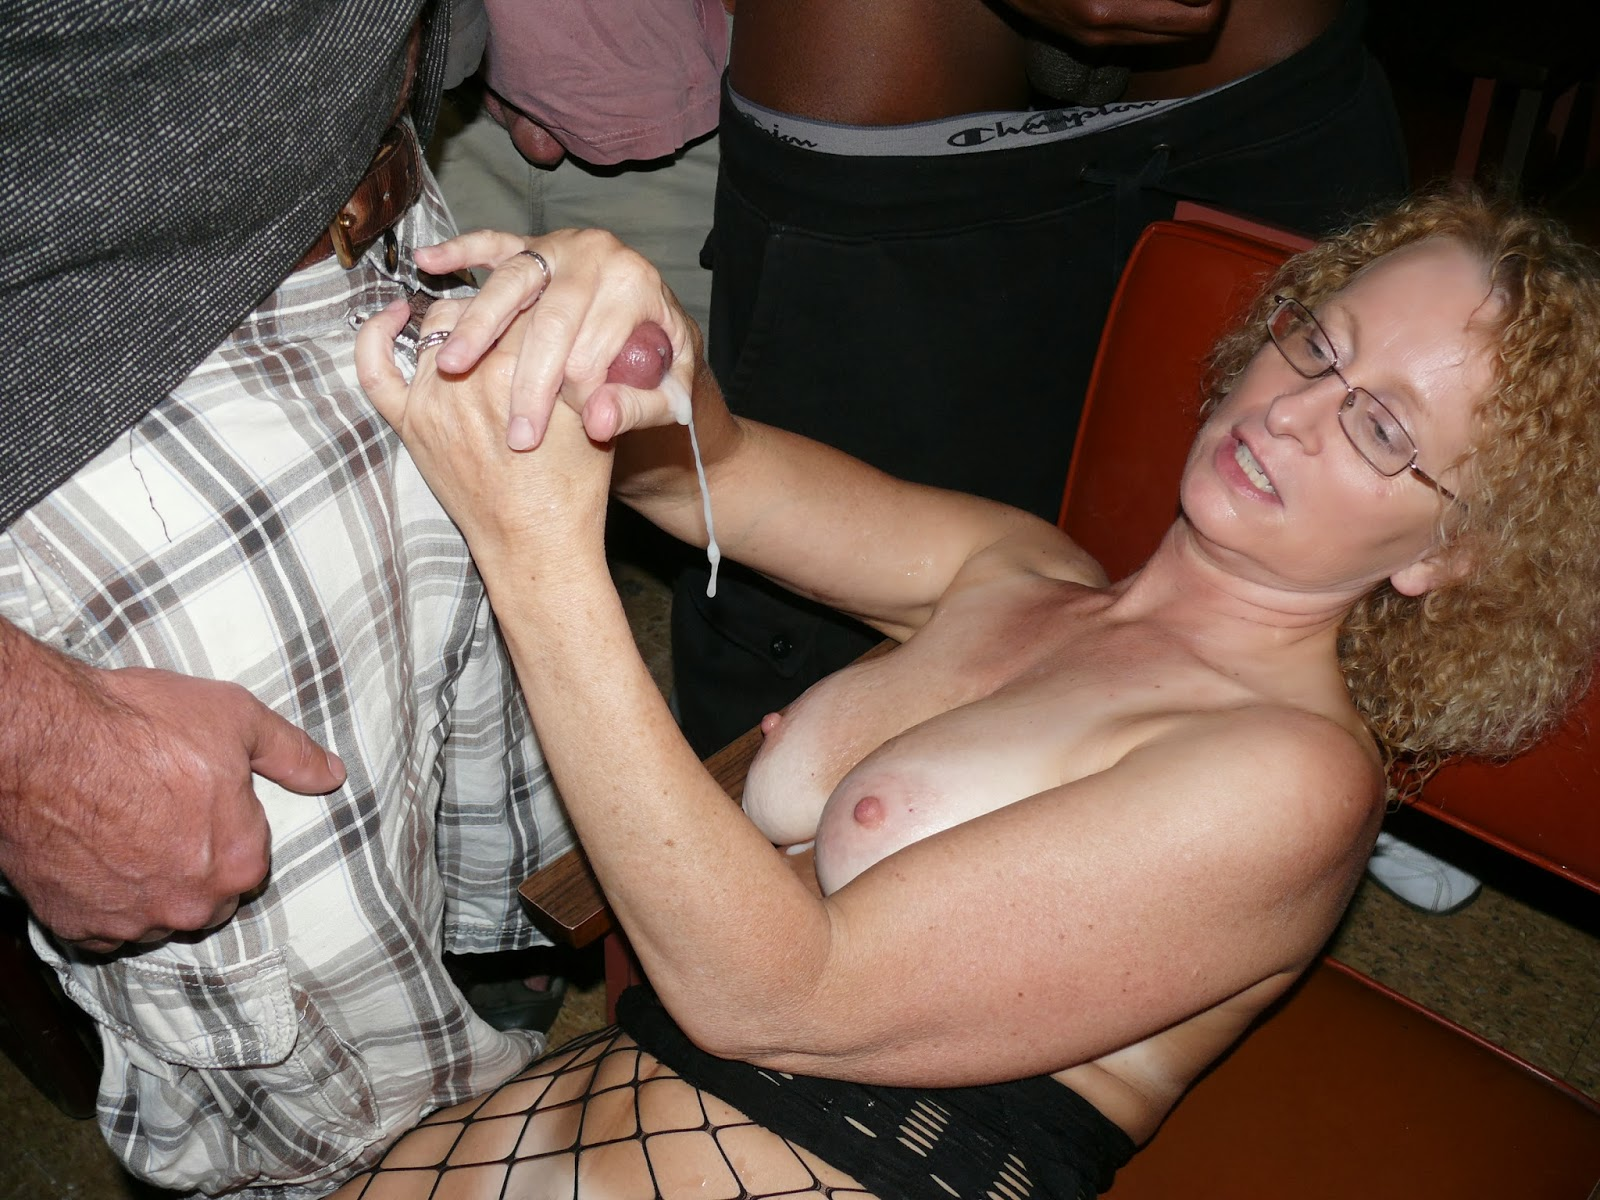 Amateur Cinema Adult Porn Movies sex in an adult theater - megapornx